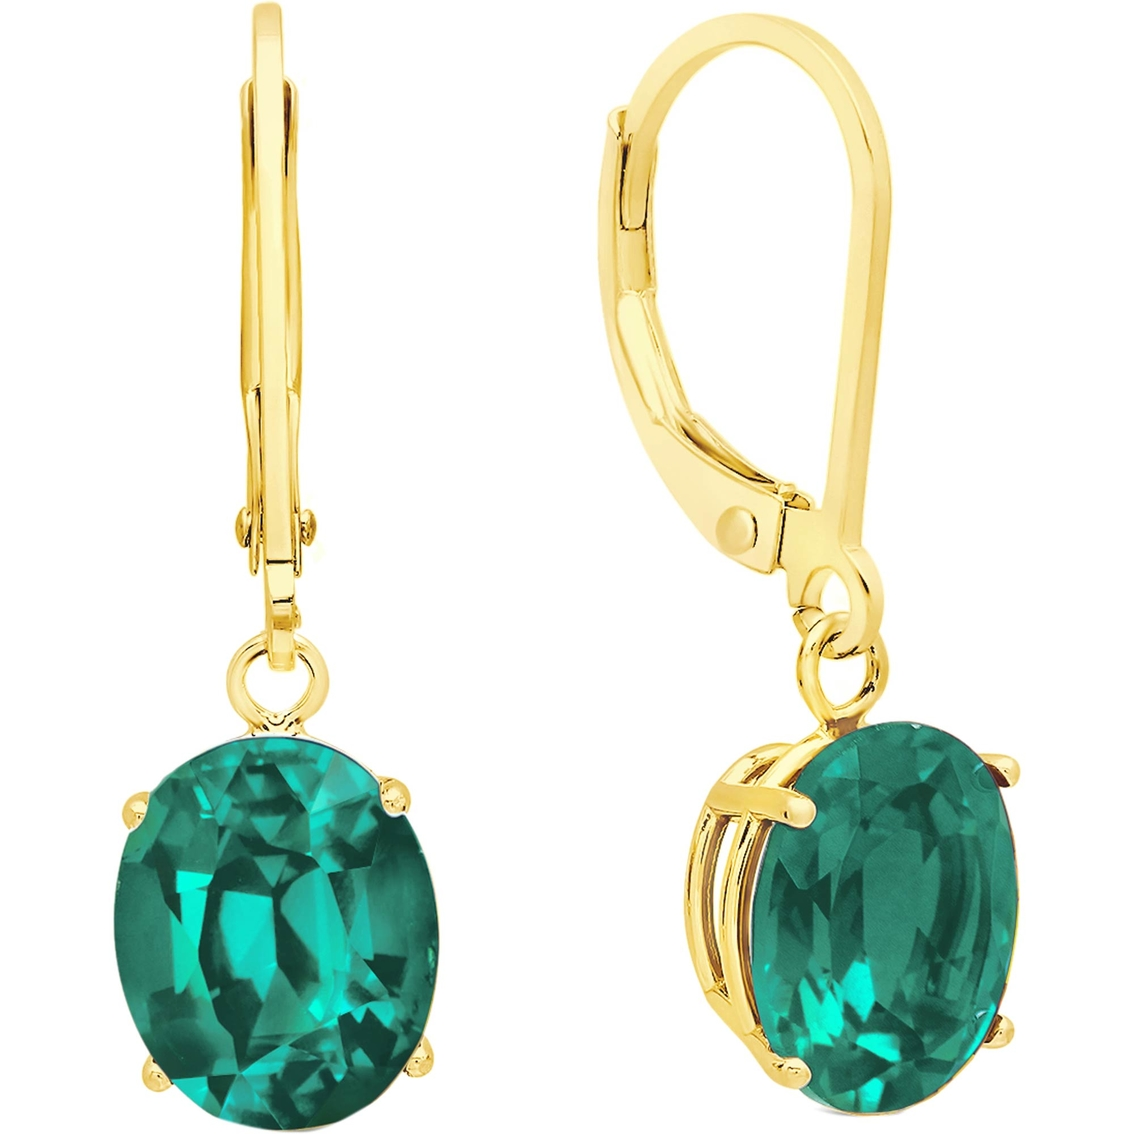 14k Yellow Gold Oval Emerald and Diamond Leverback Earrings